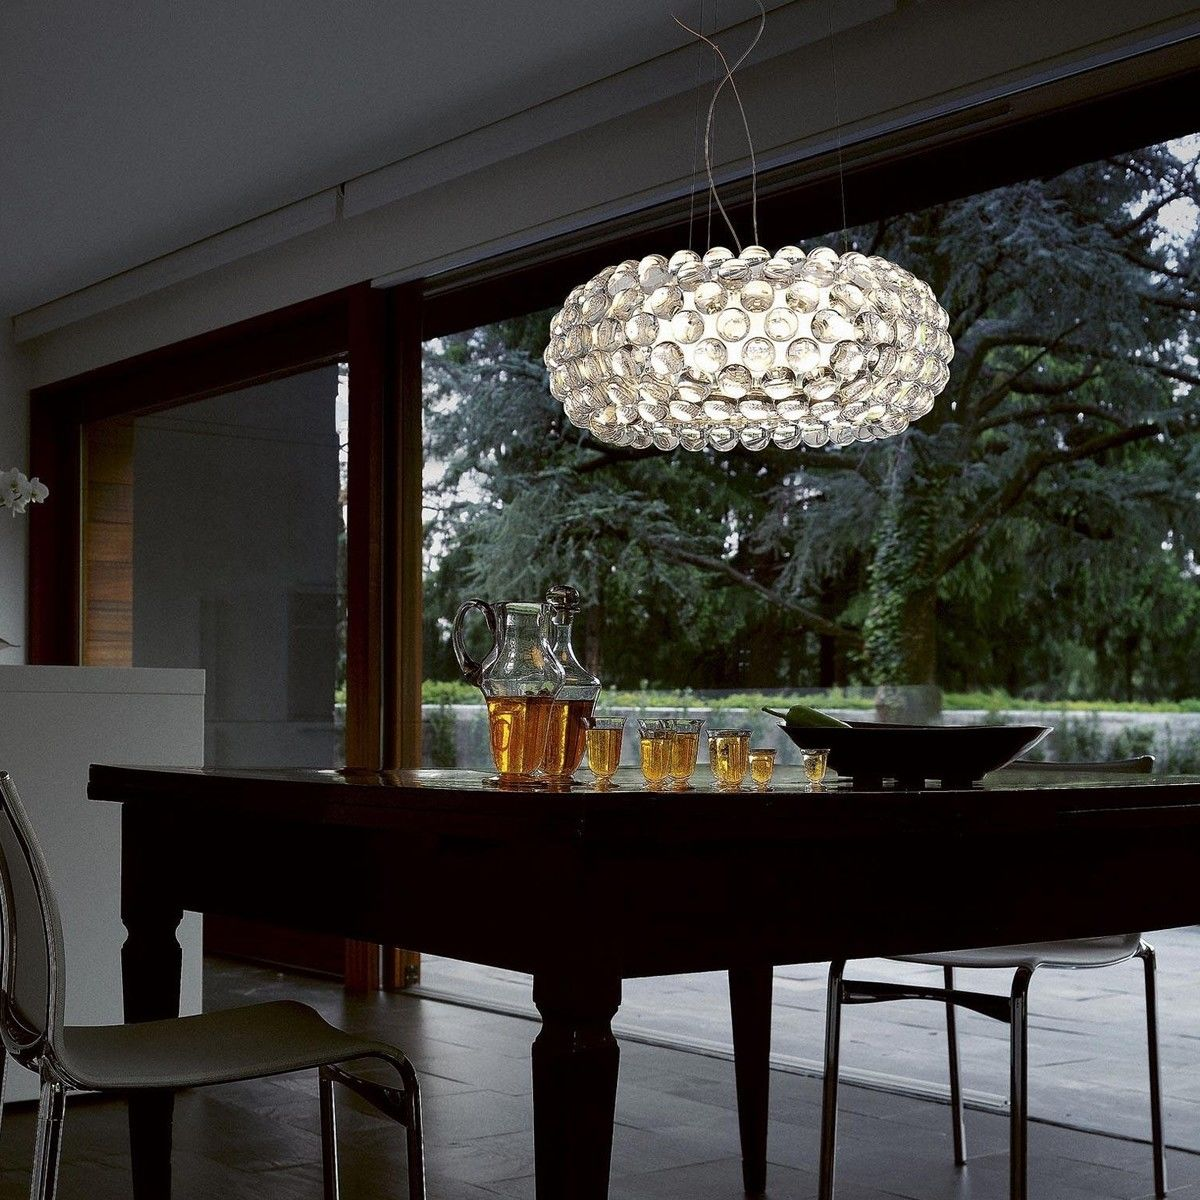 caboche media led suspension lamp foscarini. Black Bedroom Furniture Sets. Home Design Ideas